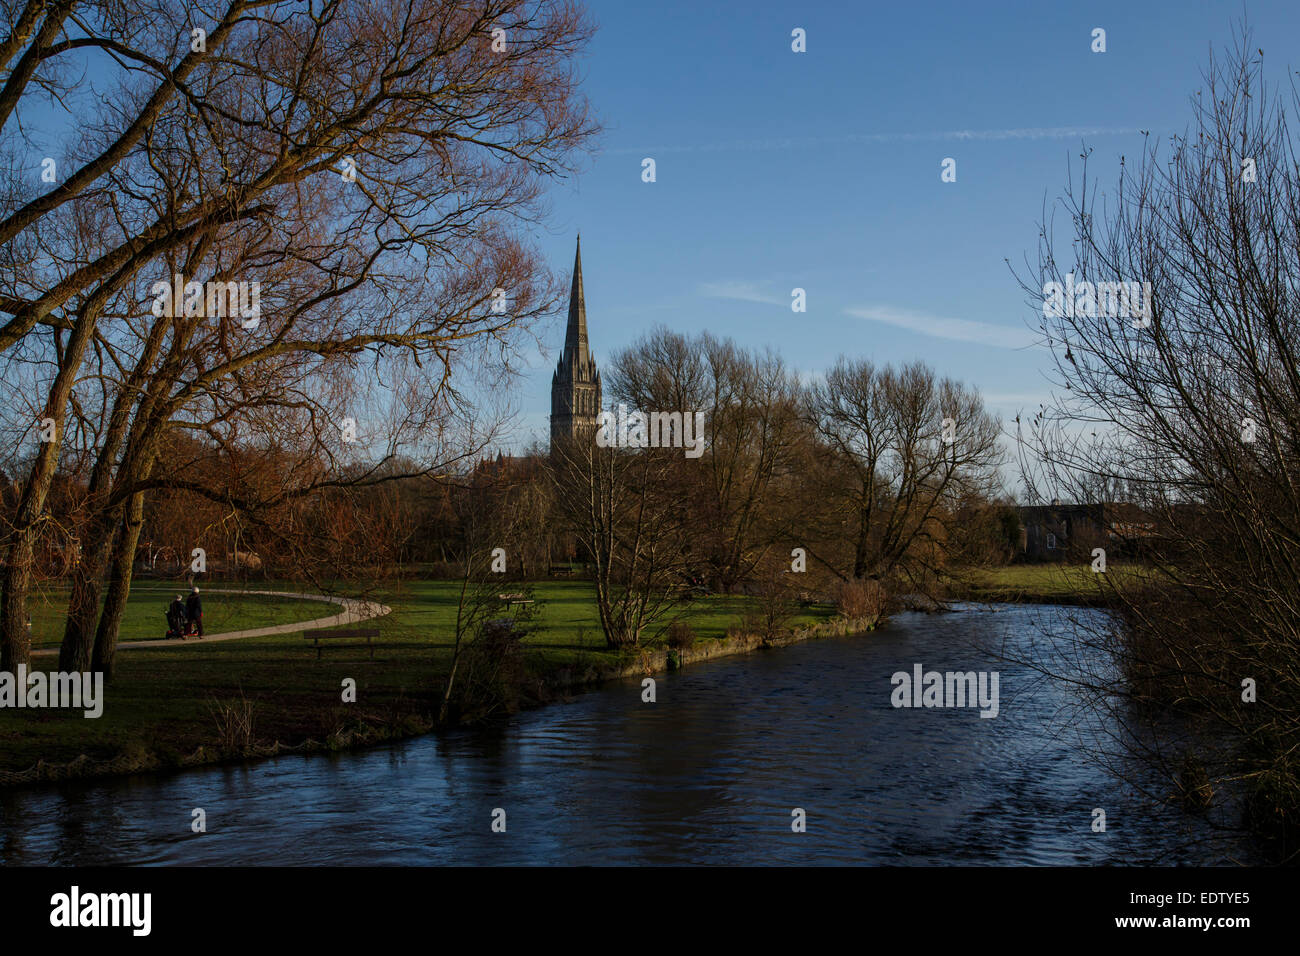 View of Salisbury Cathedral spire from 'Town Path' with the River Avon in foreground. Stock Photo